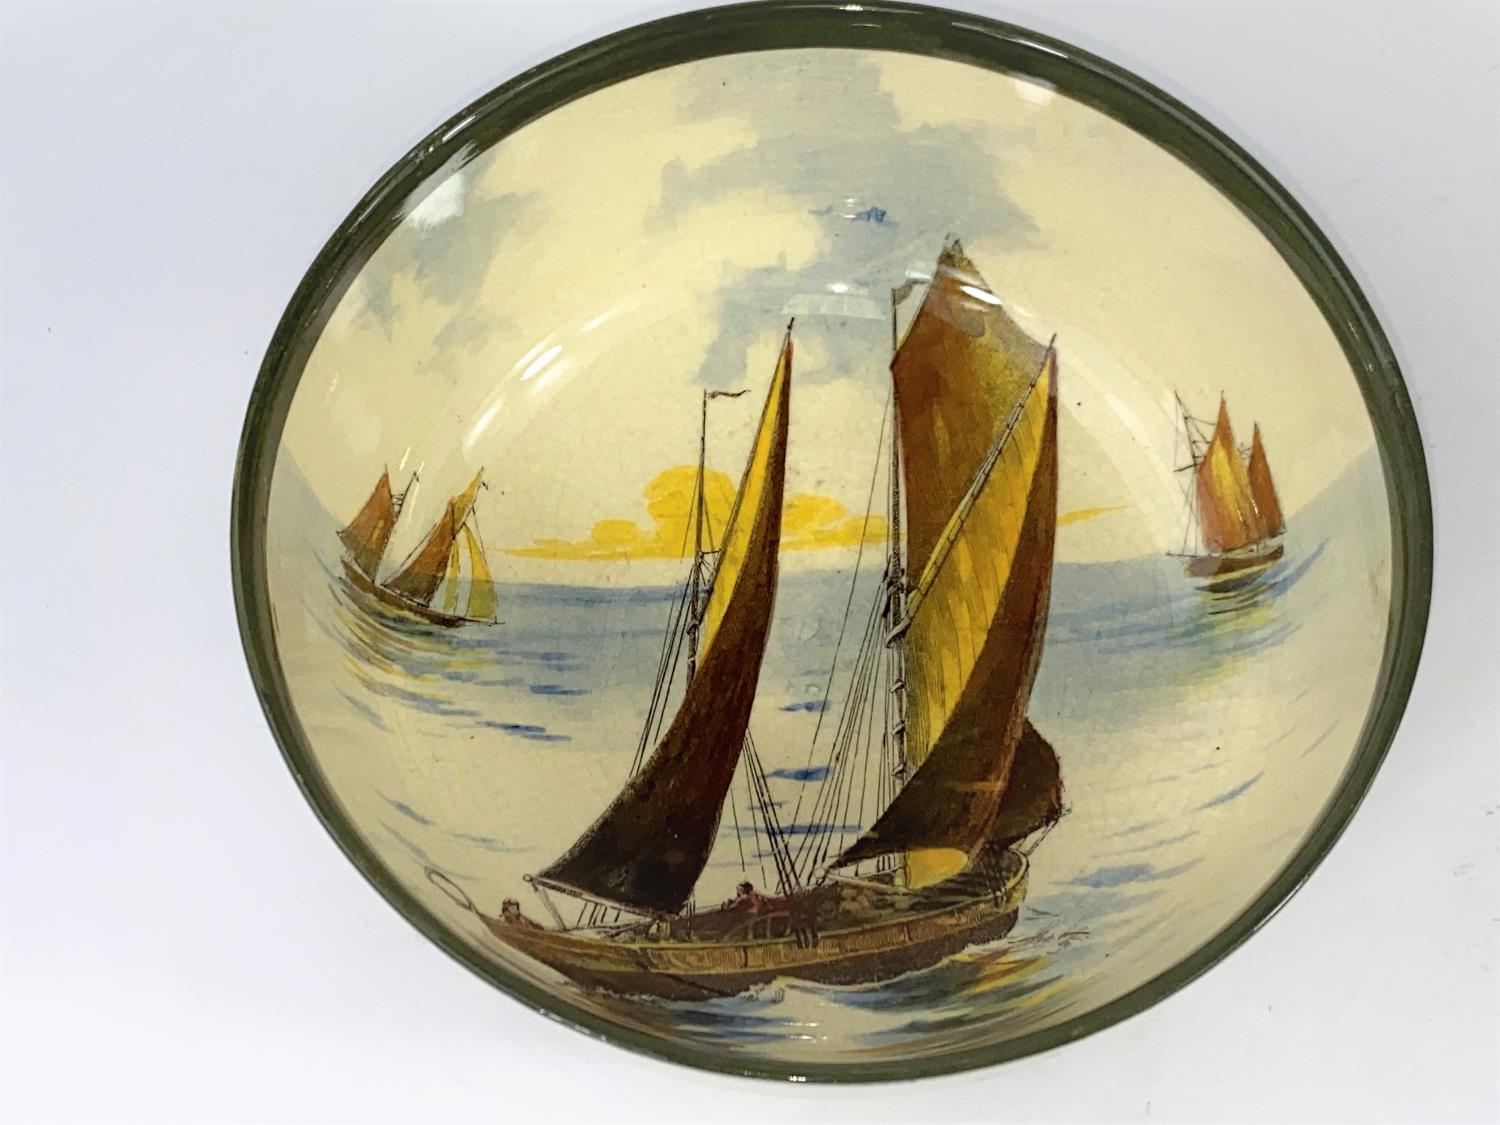 A Royal Doulton - decorated with sailing boats to the interior and exterior - Image 2 of 3